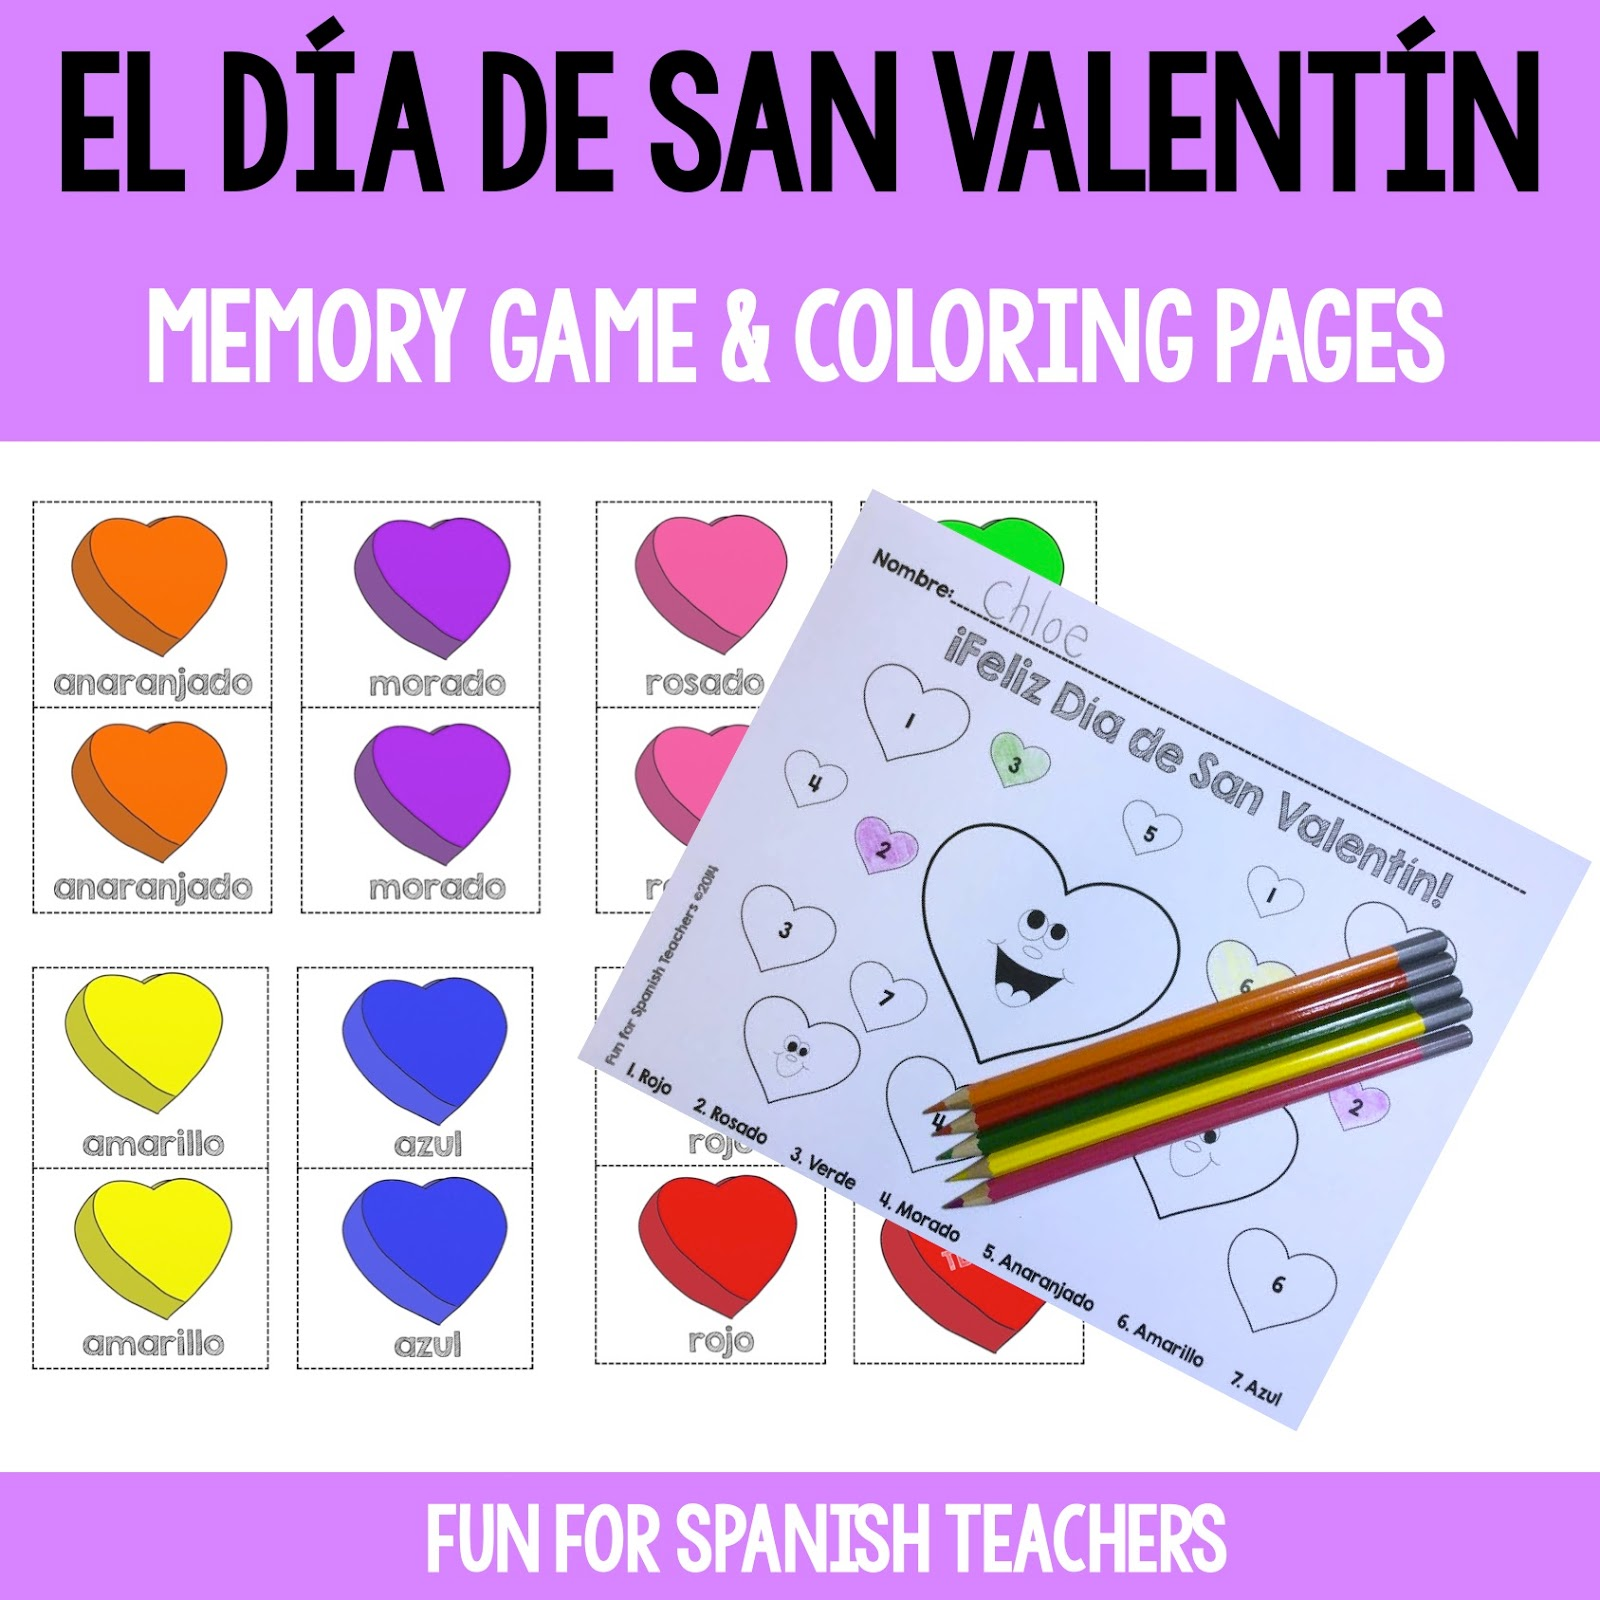 Fun For Spanish Teachers Celebrating Valentine S Day In Spanish Class